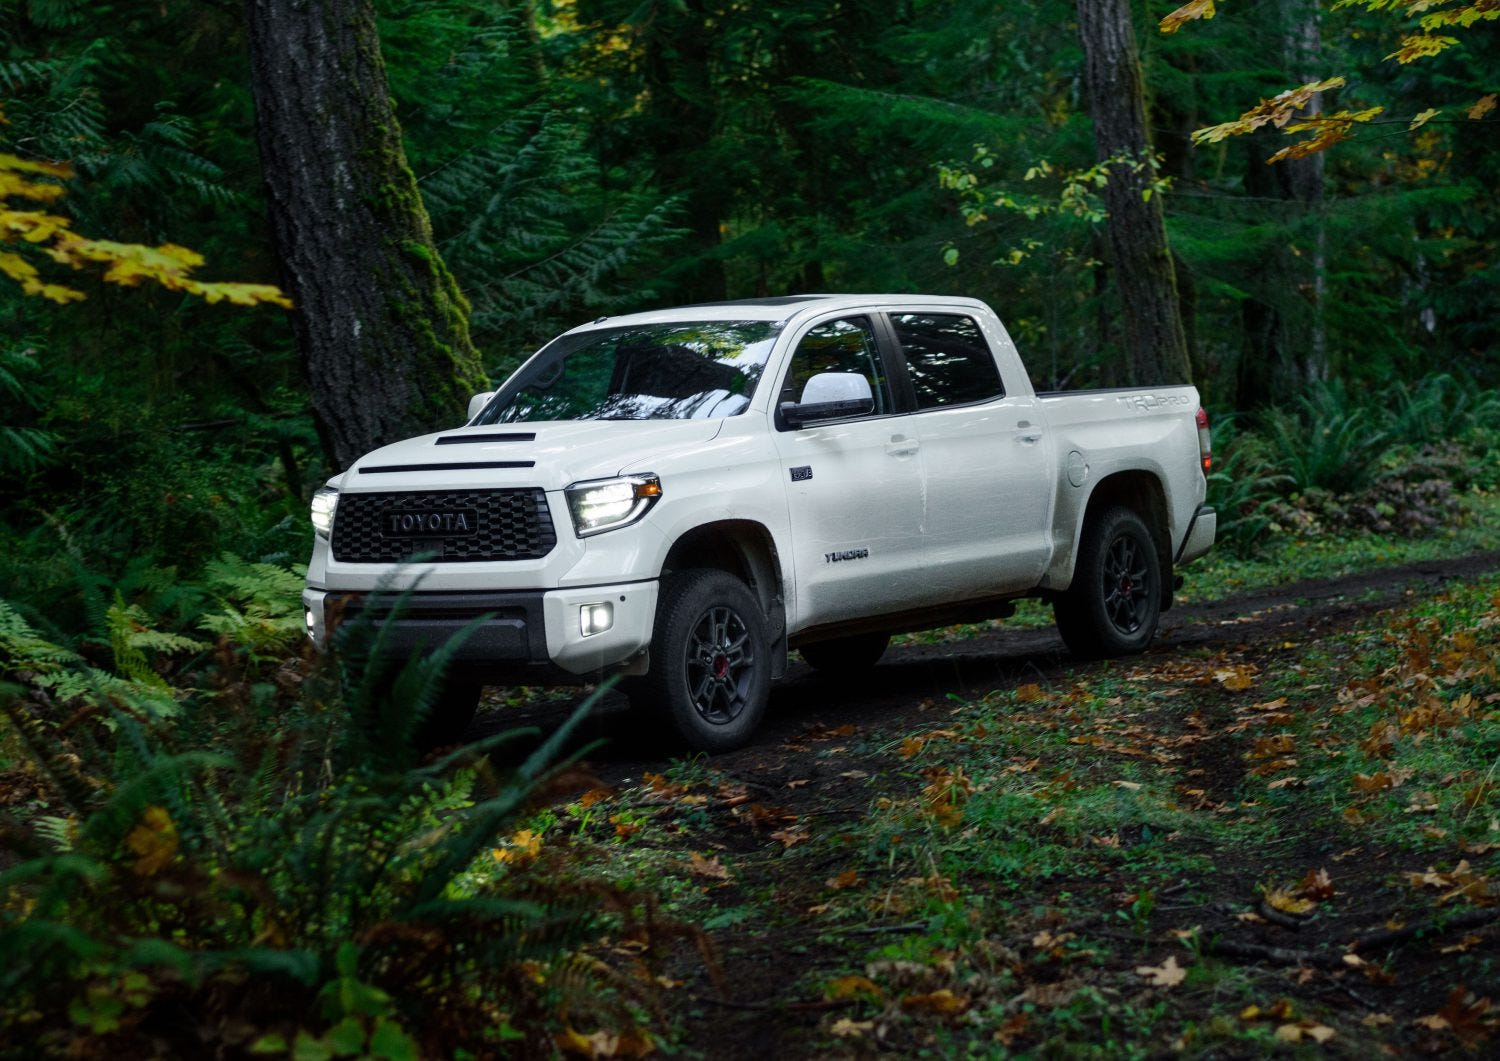 These are the 19 most dependable vehicles, according to J.D. Power Vehicle Dependability Study